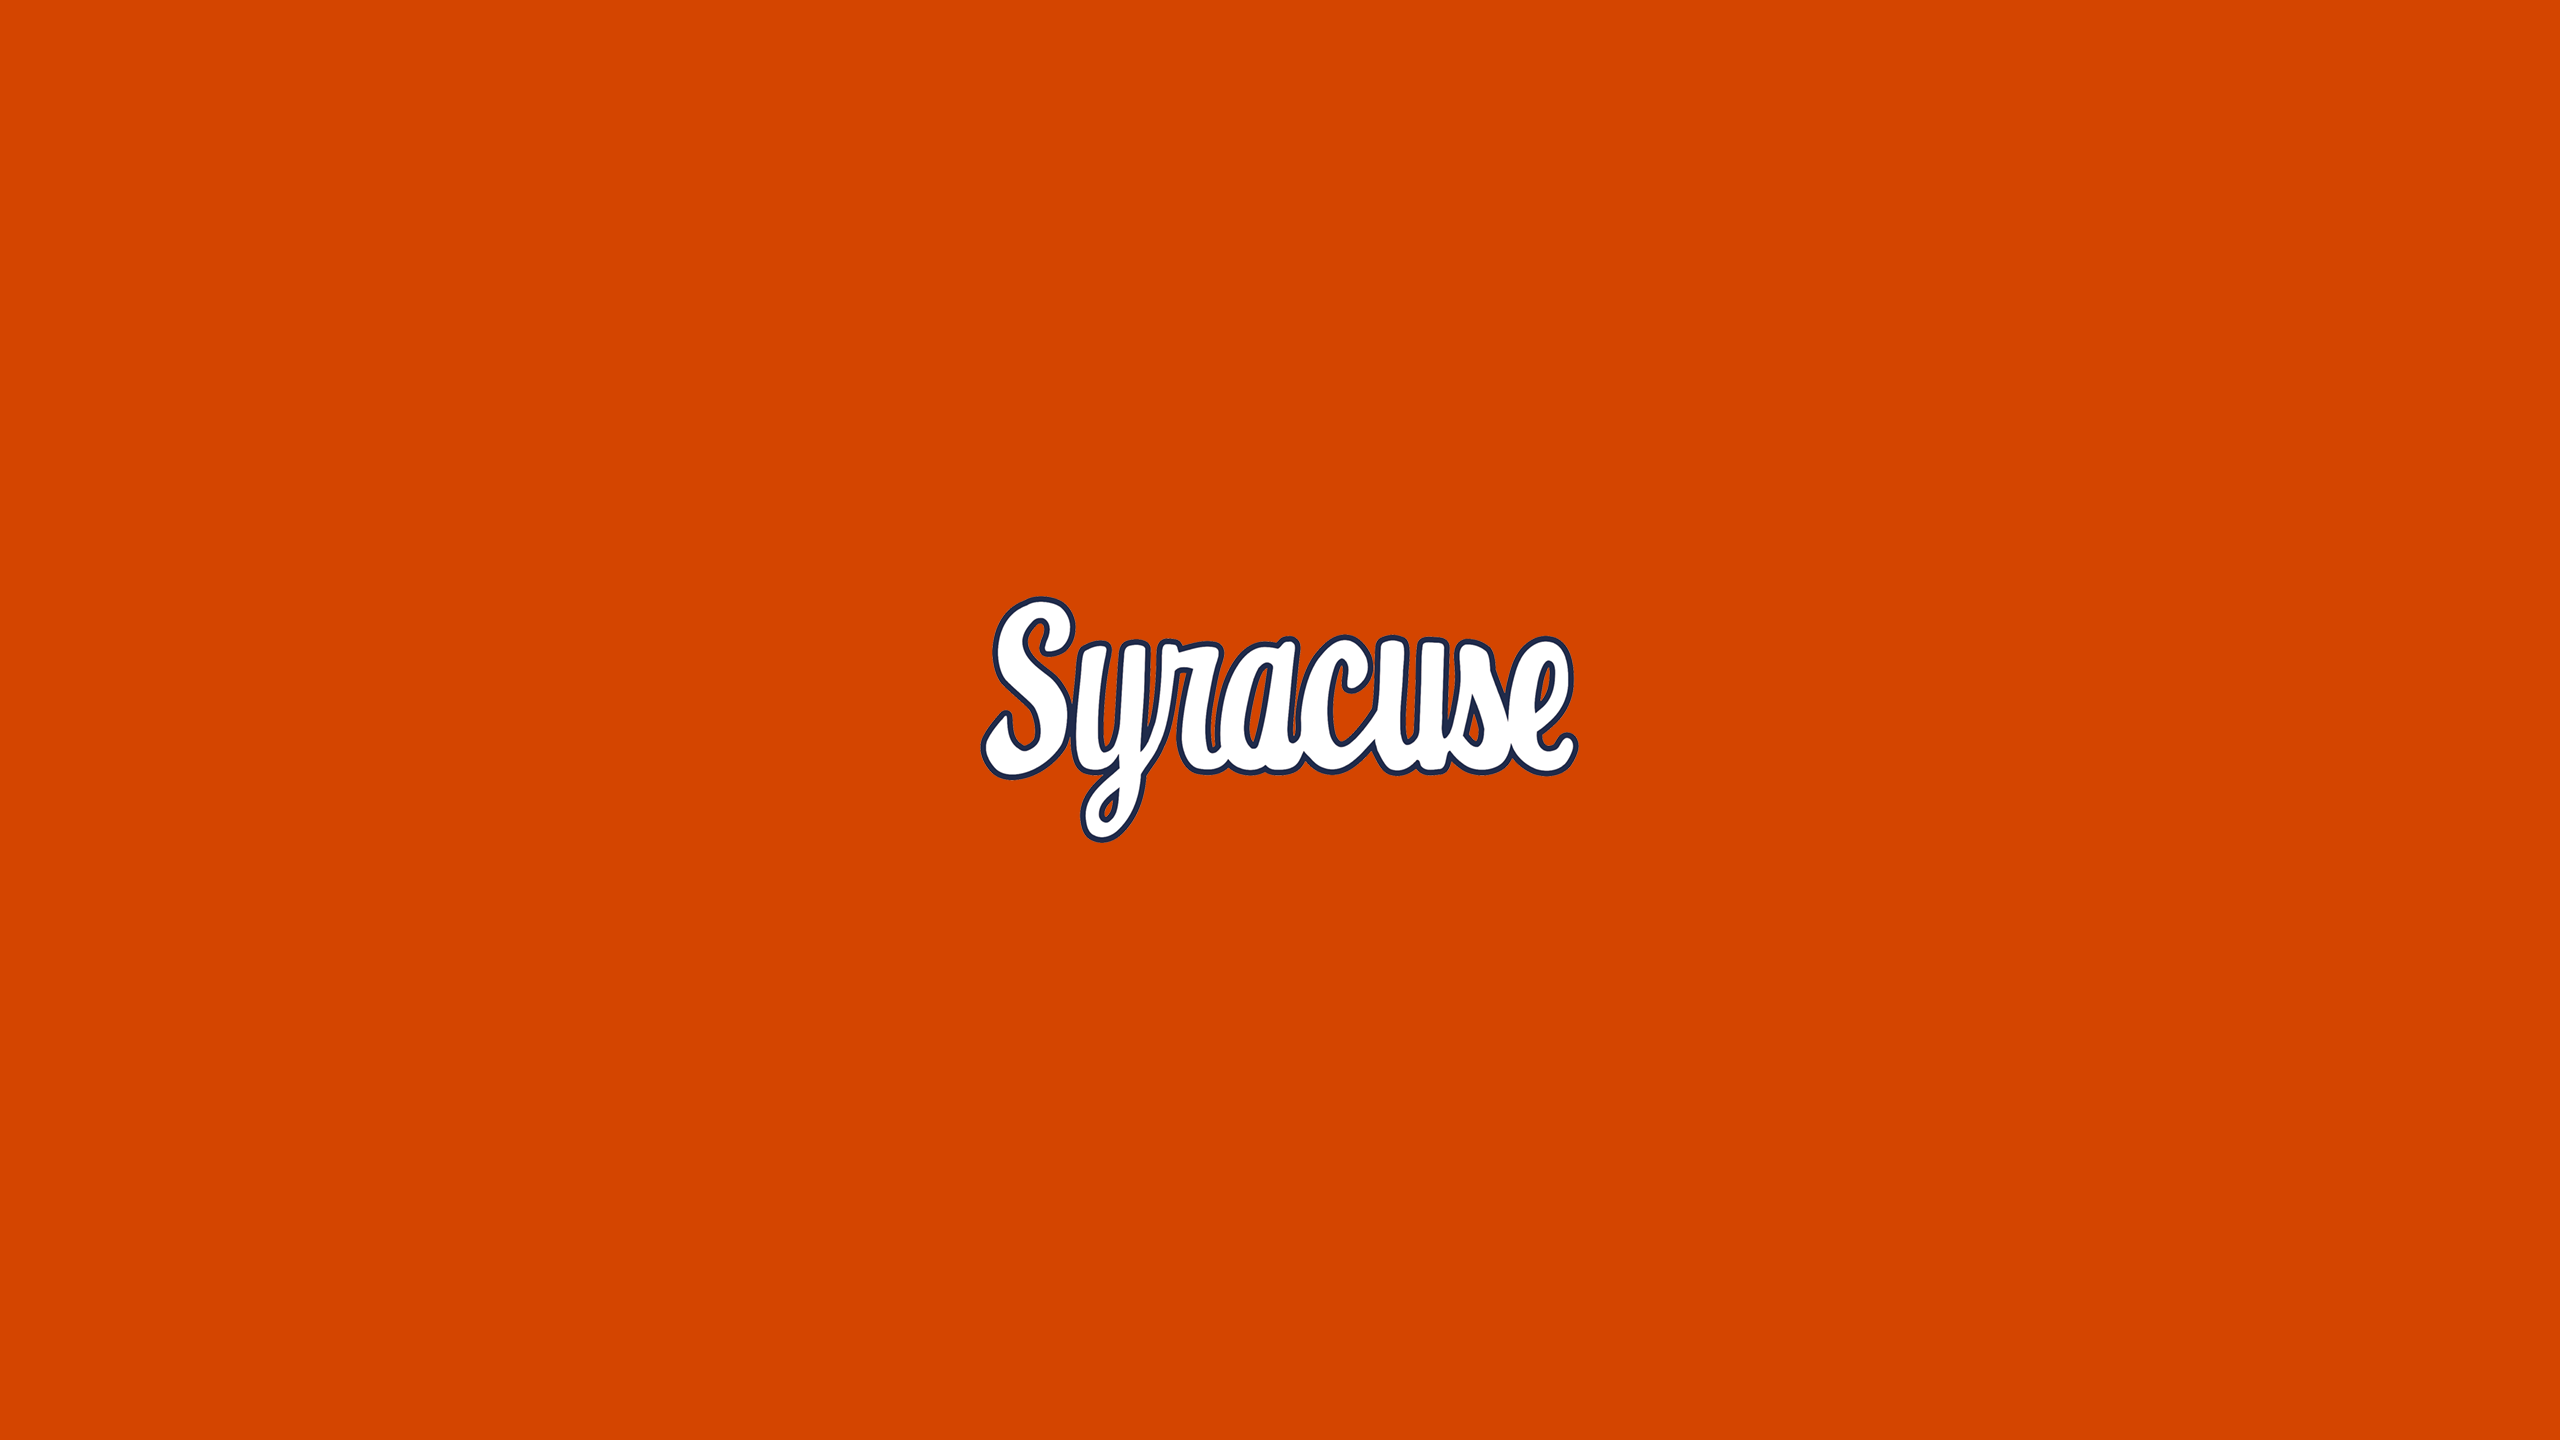 Syracuse University (Old School)